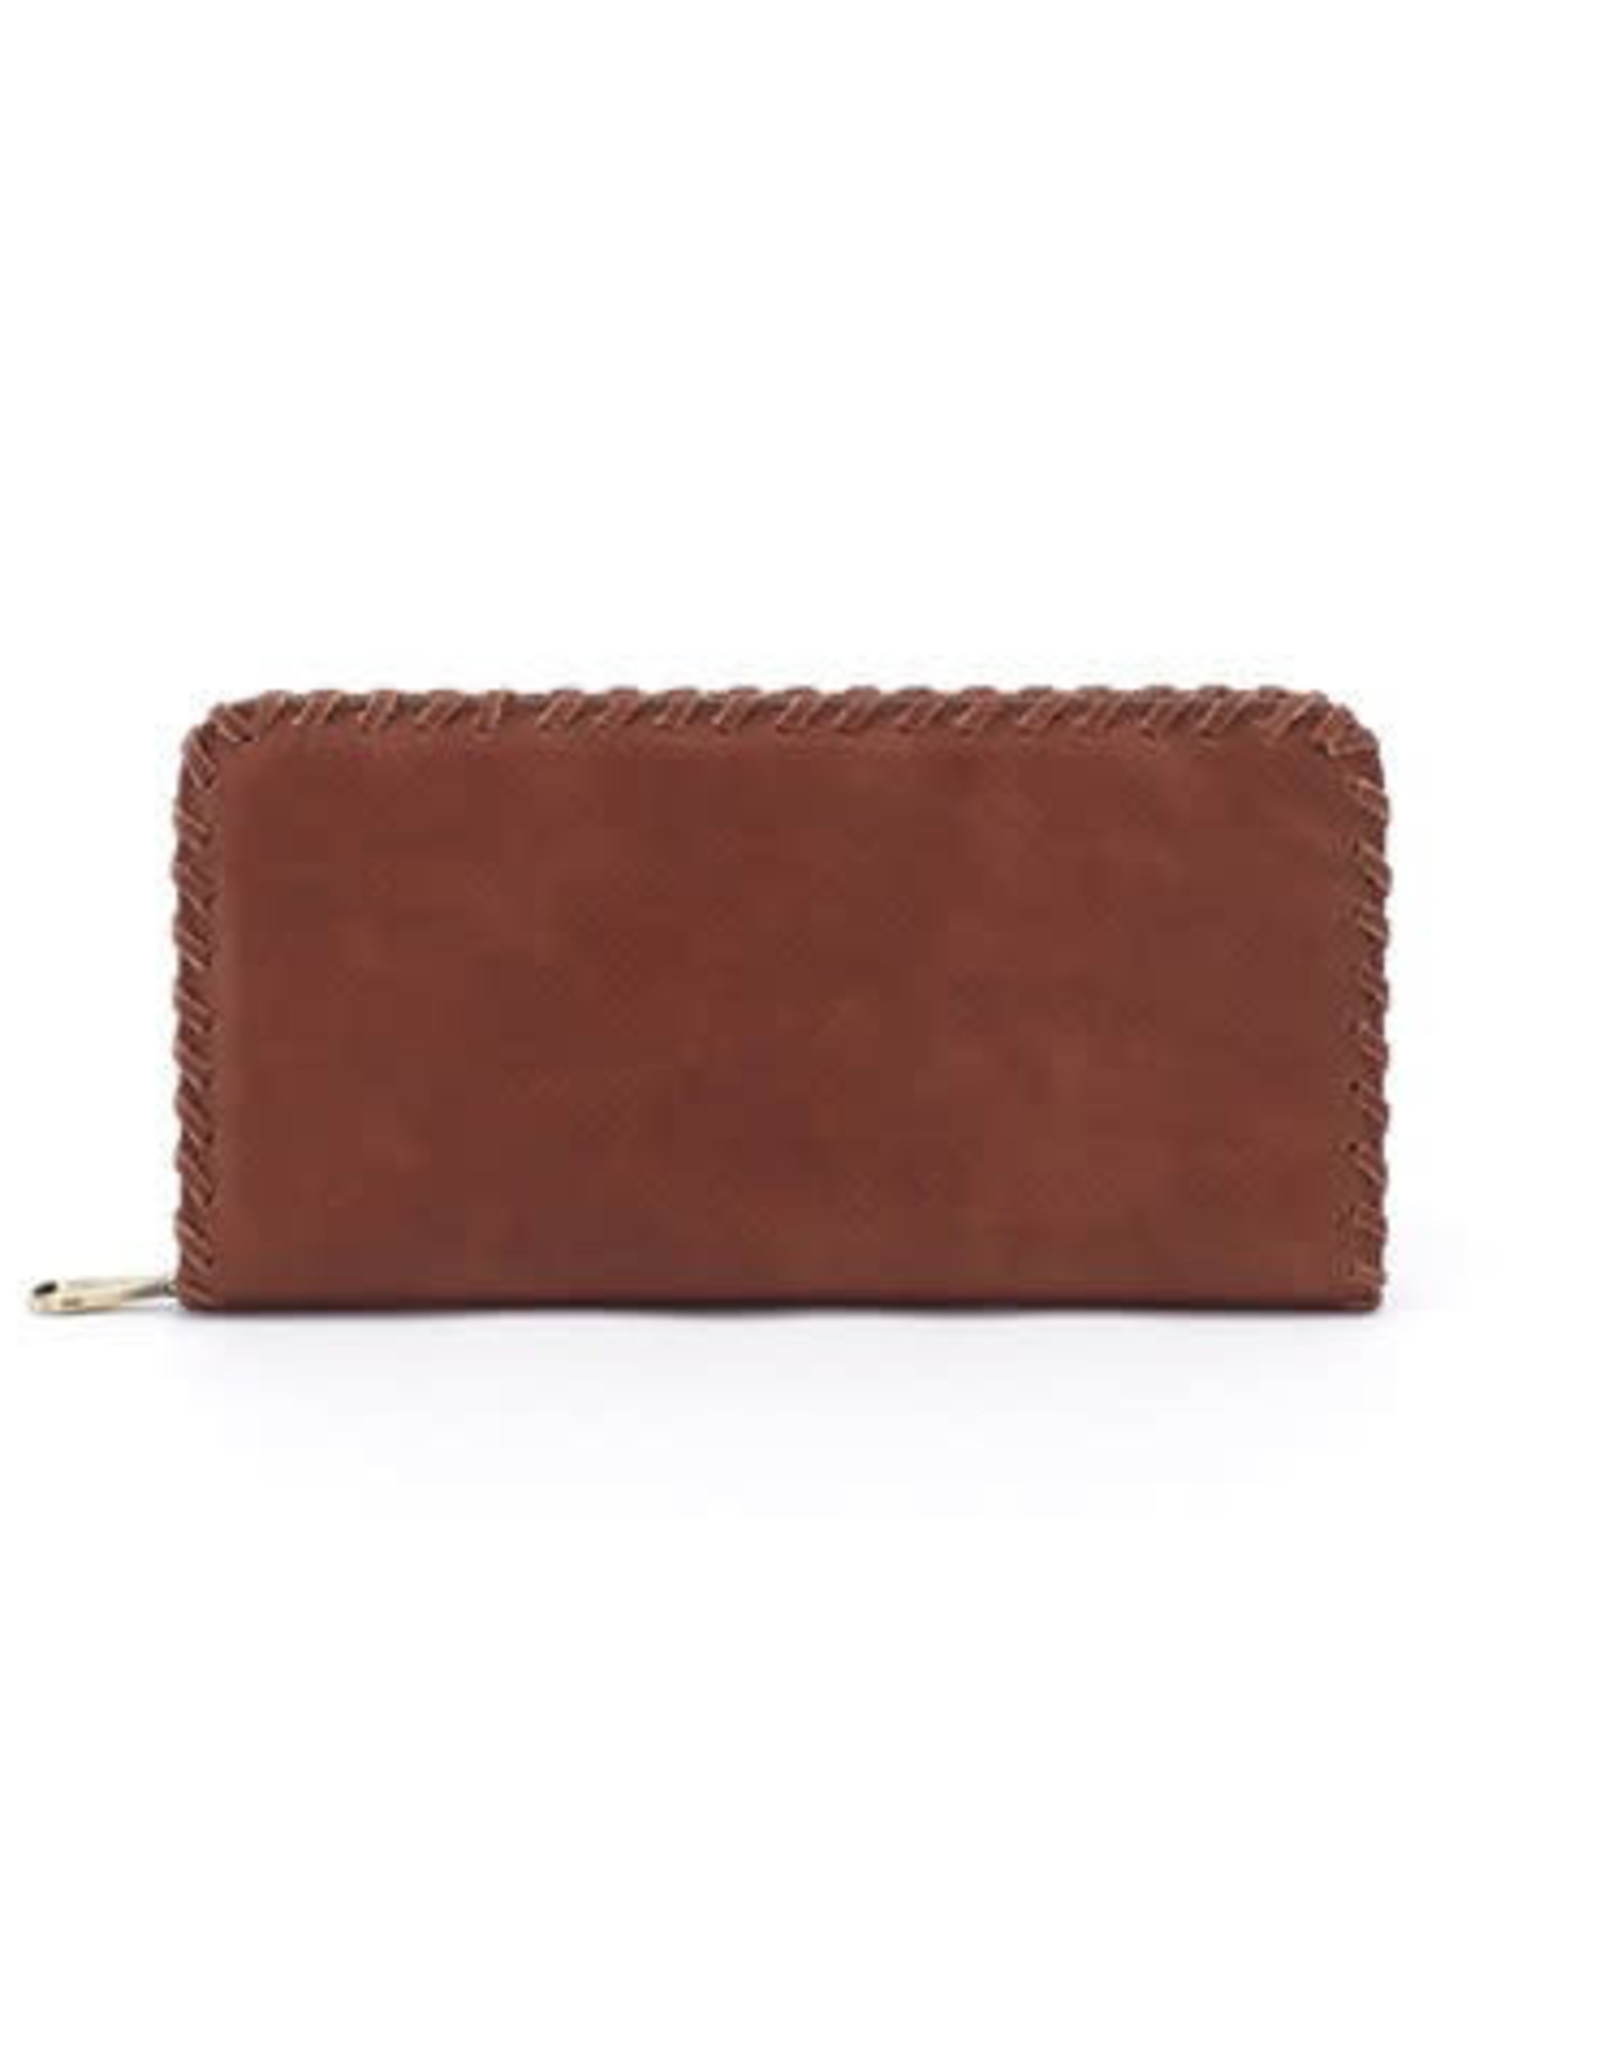 HOBO Wynn Wallet - Woodlands